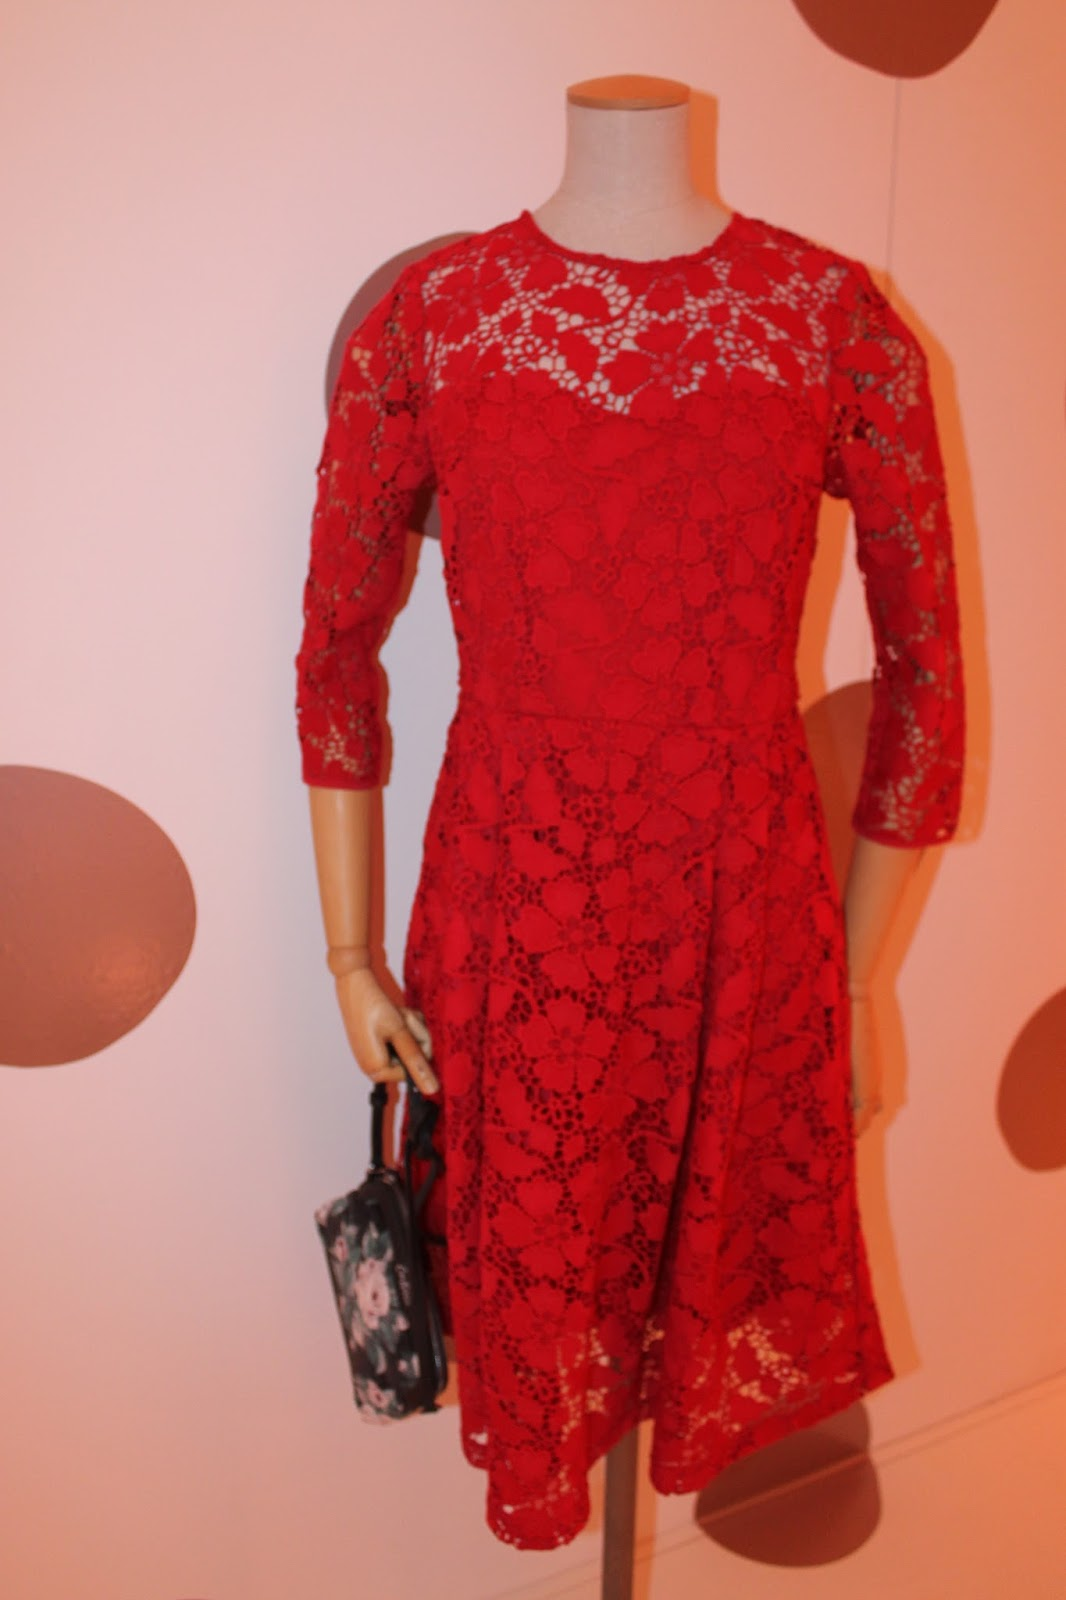 8e91645d0fc2 Red is a lucky colour and traditionally you wear something red to welcome  the new year. This lace dress by Cath Kidston has got a full skirt, ...